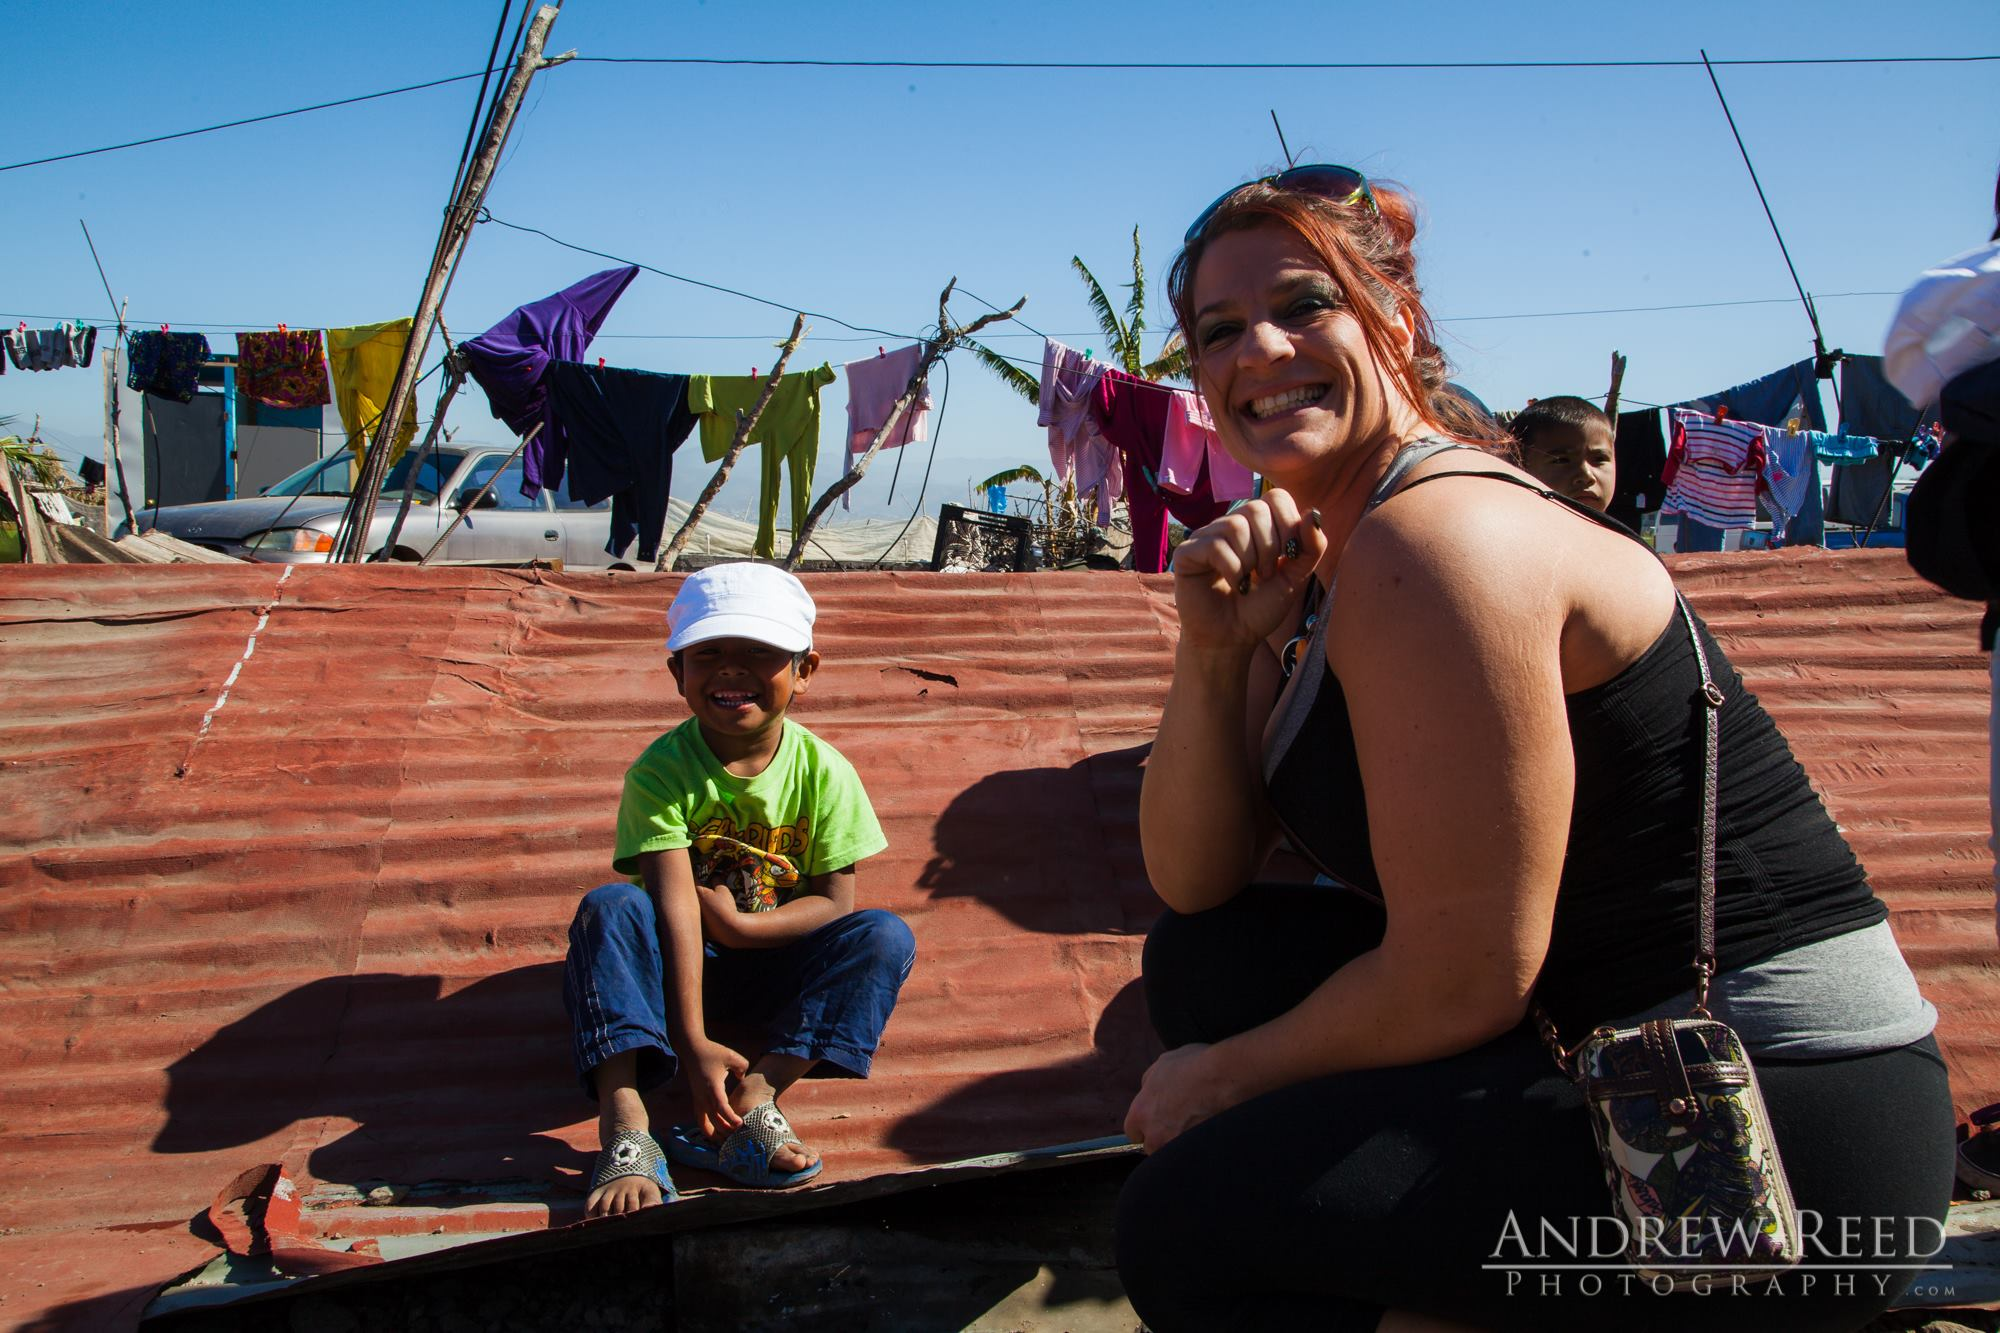 This is Joy :) She designs and sells hats and has recently adopted the 1 for 1 model to give hats to people in need, those undergoing cancer treatment and more. She brought hats and distributed to the children here and at our job site and it was truly amazing to see the smiles on their faces when they received their gift. It was an honor and inspiration to witness her mission.